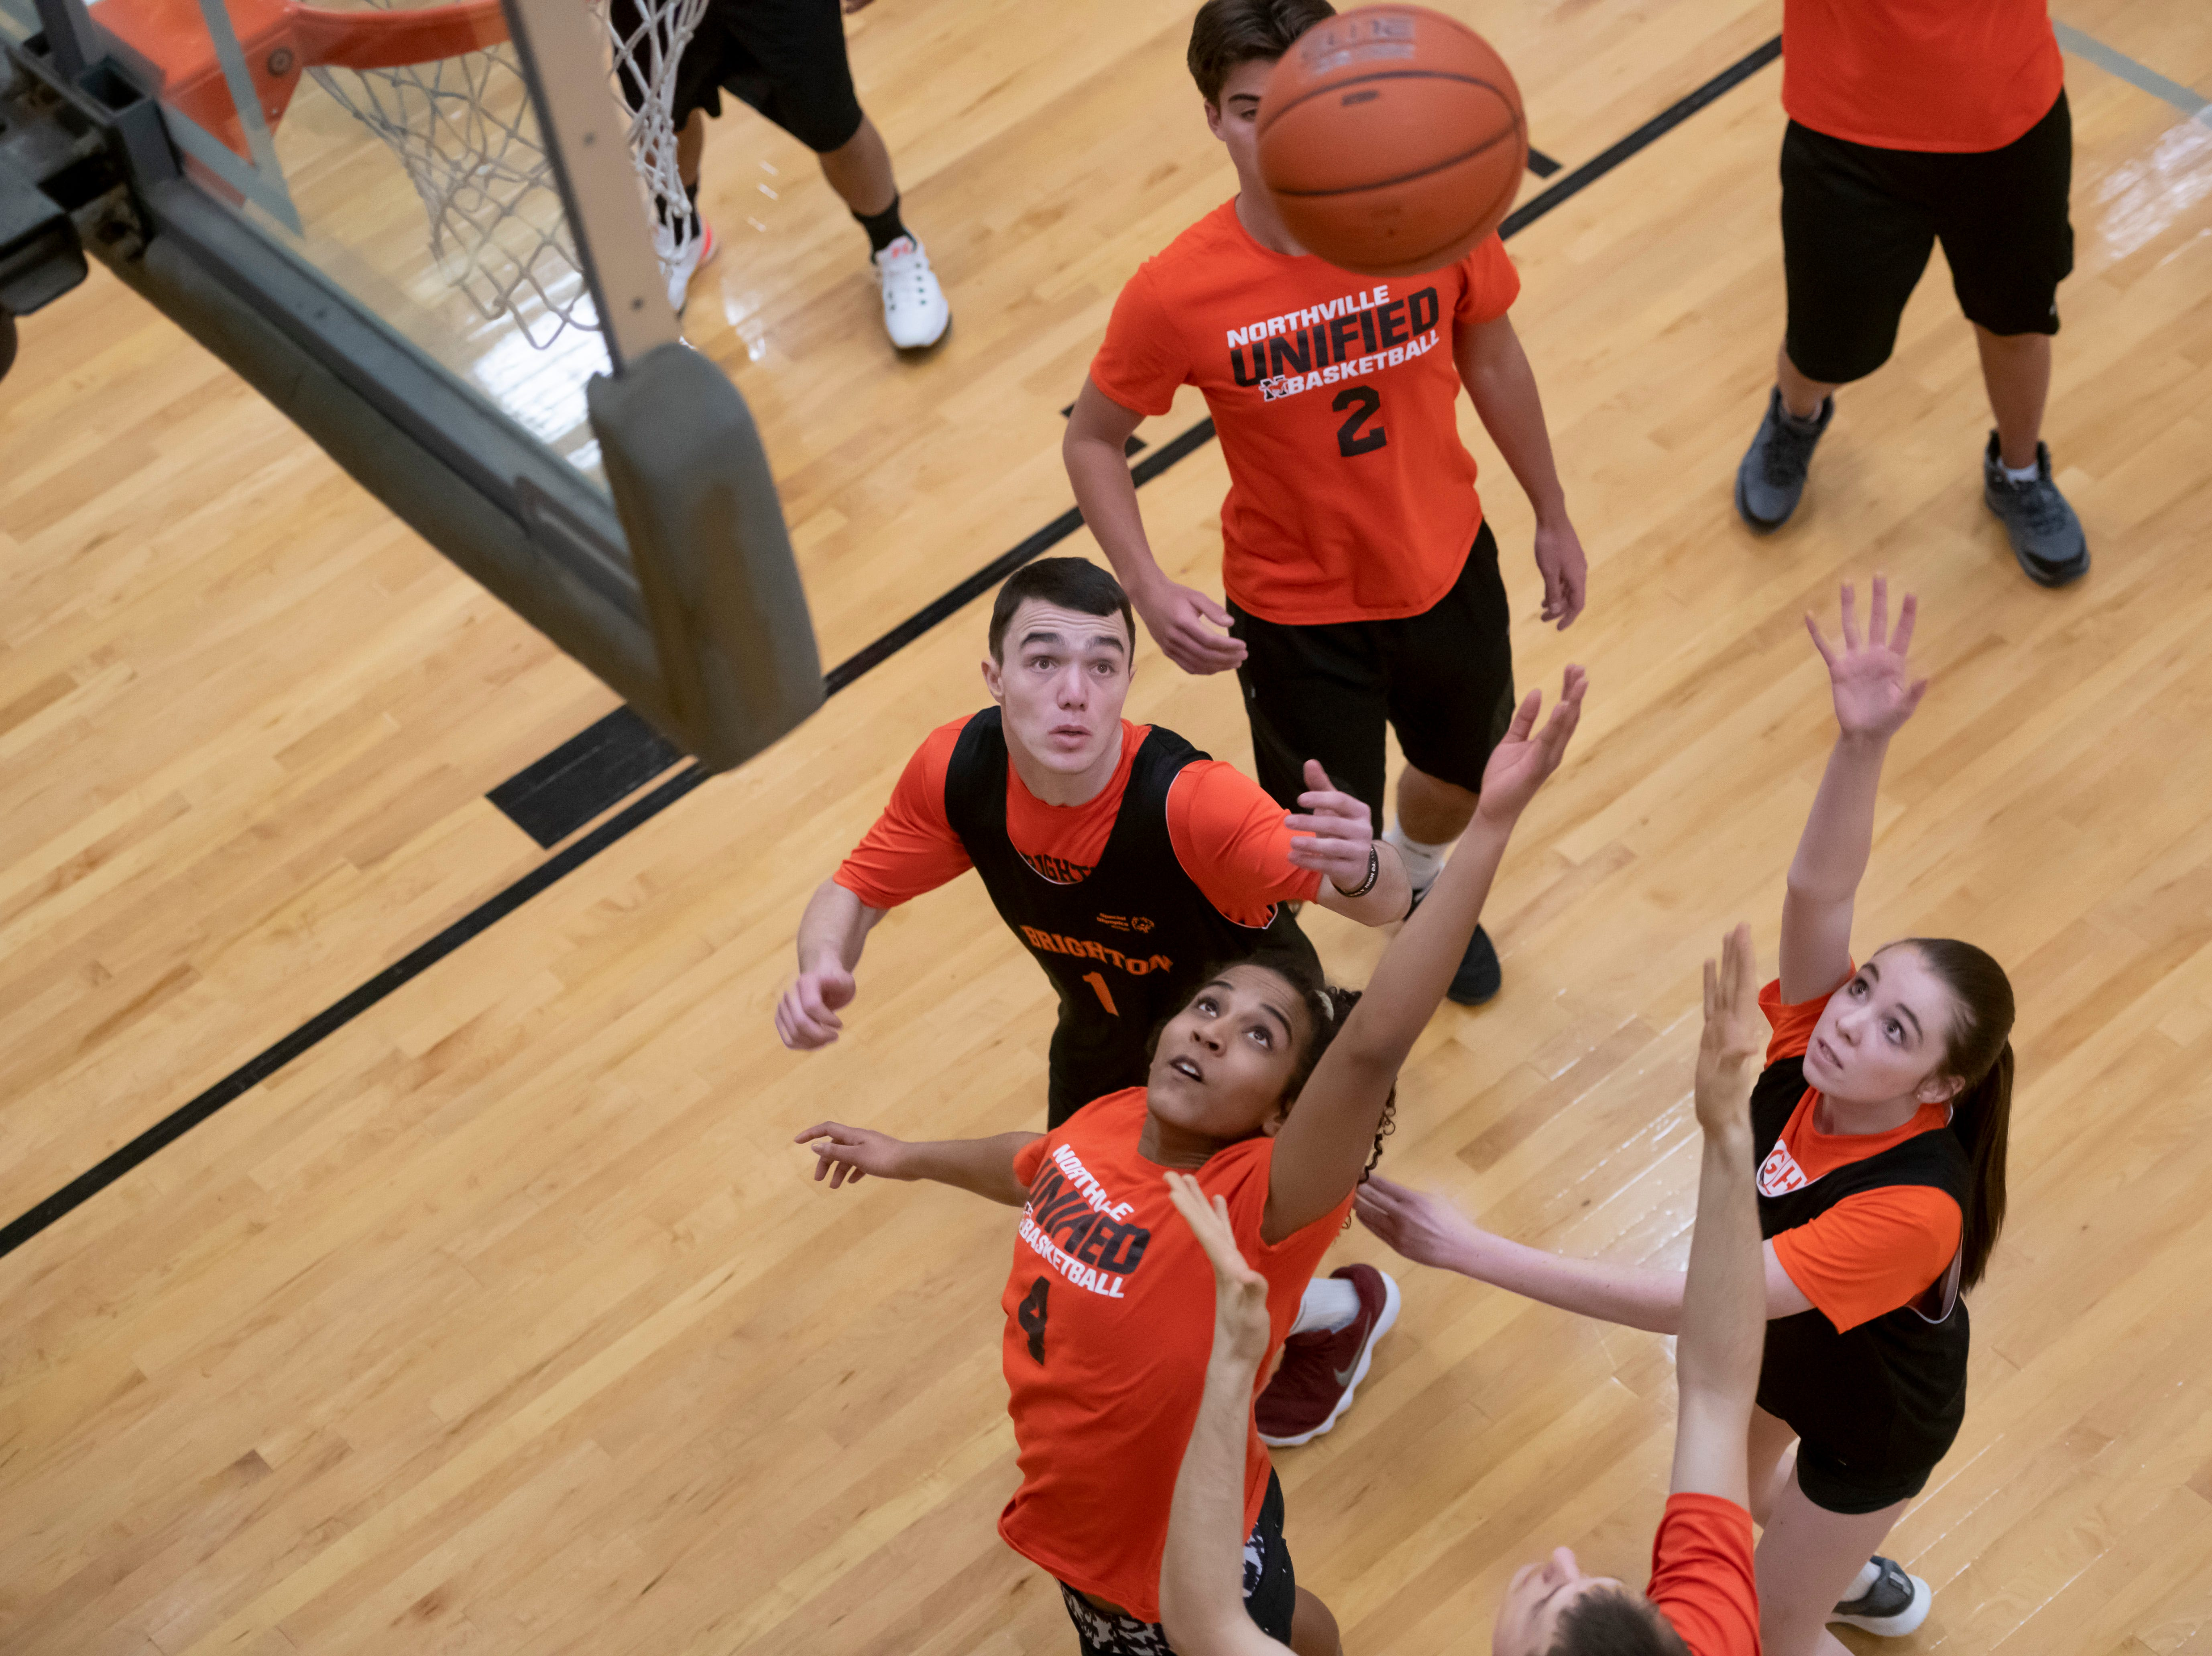 Northville Unified and Brighton battle for a rebound during the Kensington Lakes Athletic Association Unified basketball tournament at Novi high school.